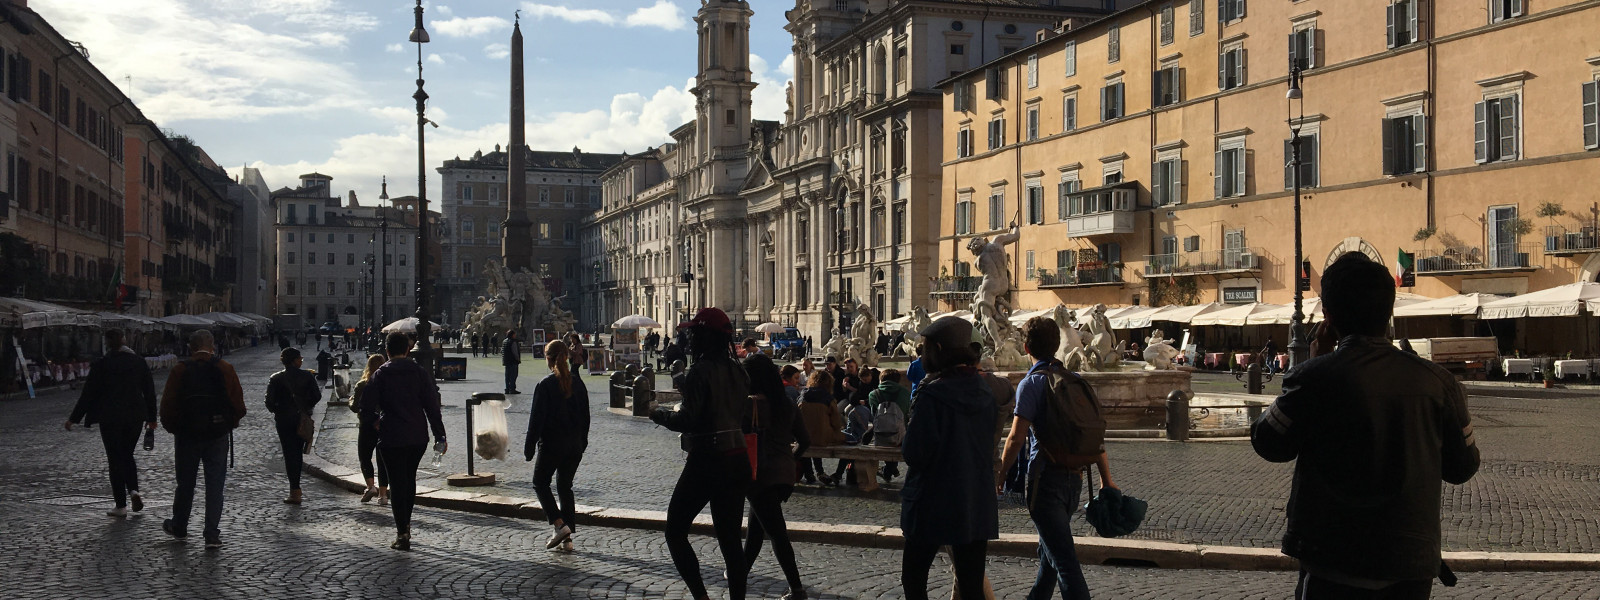 A line of students, in silhouette, walk through a public square in Rome.